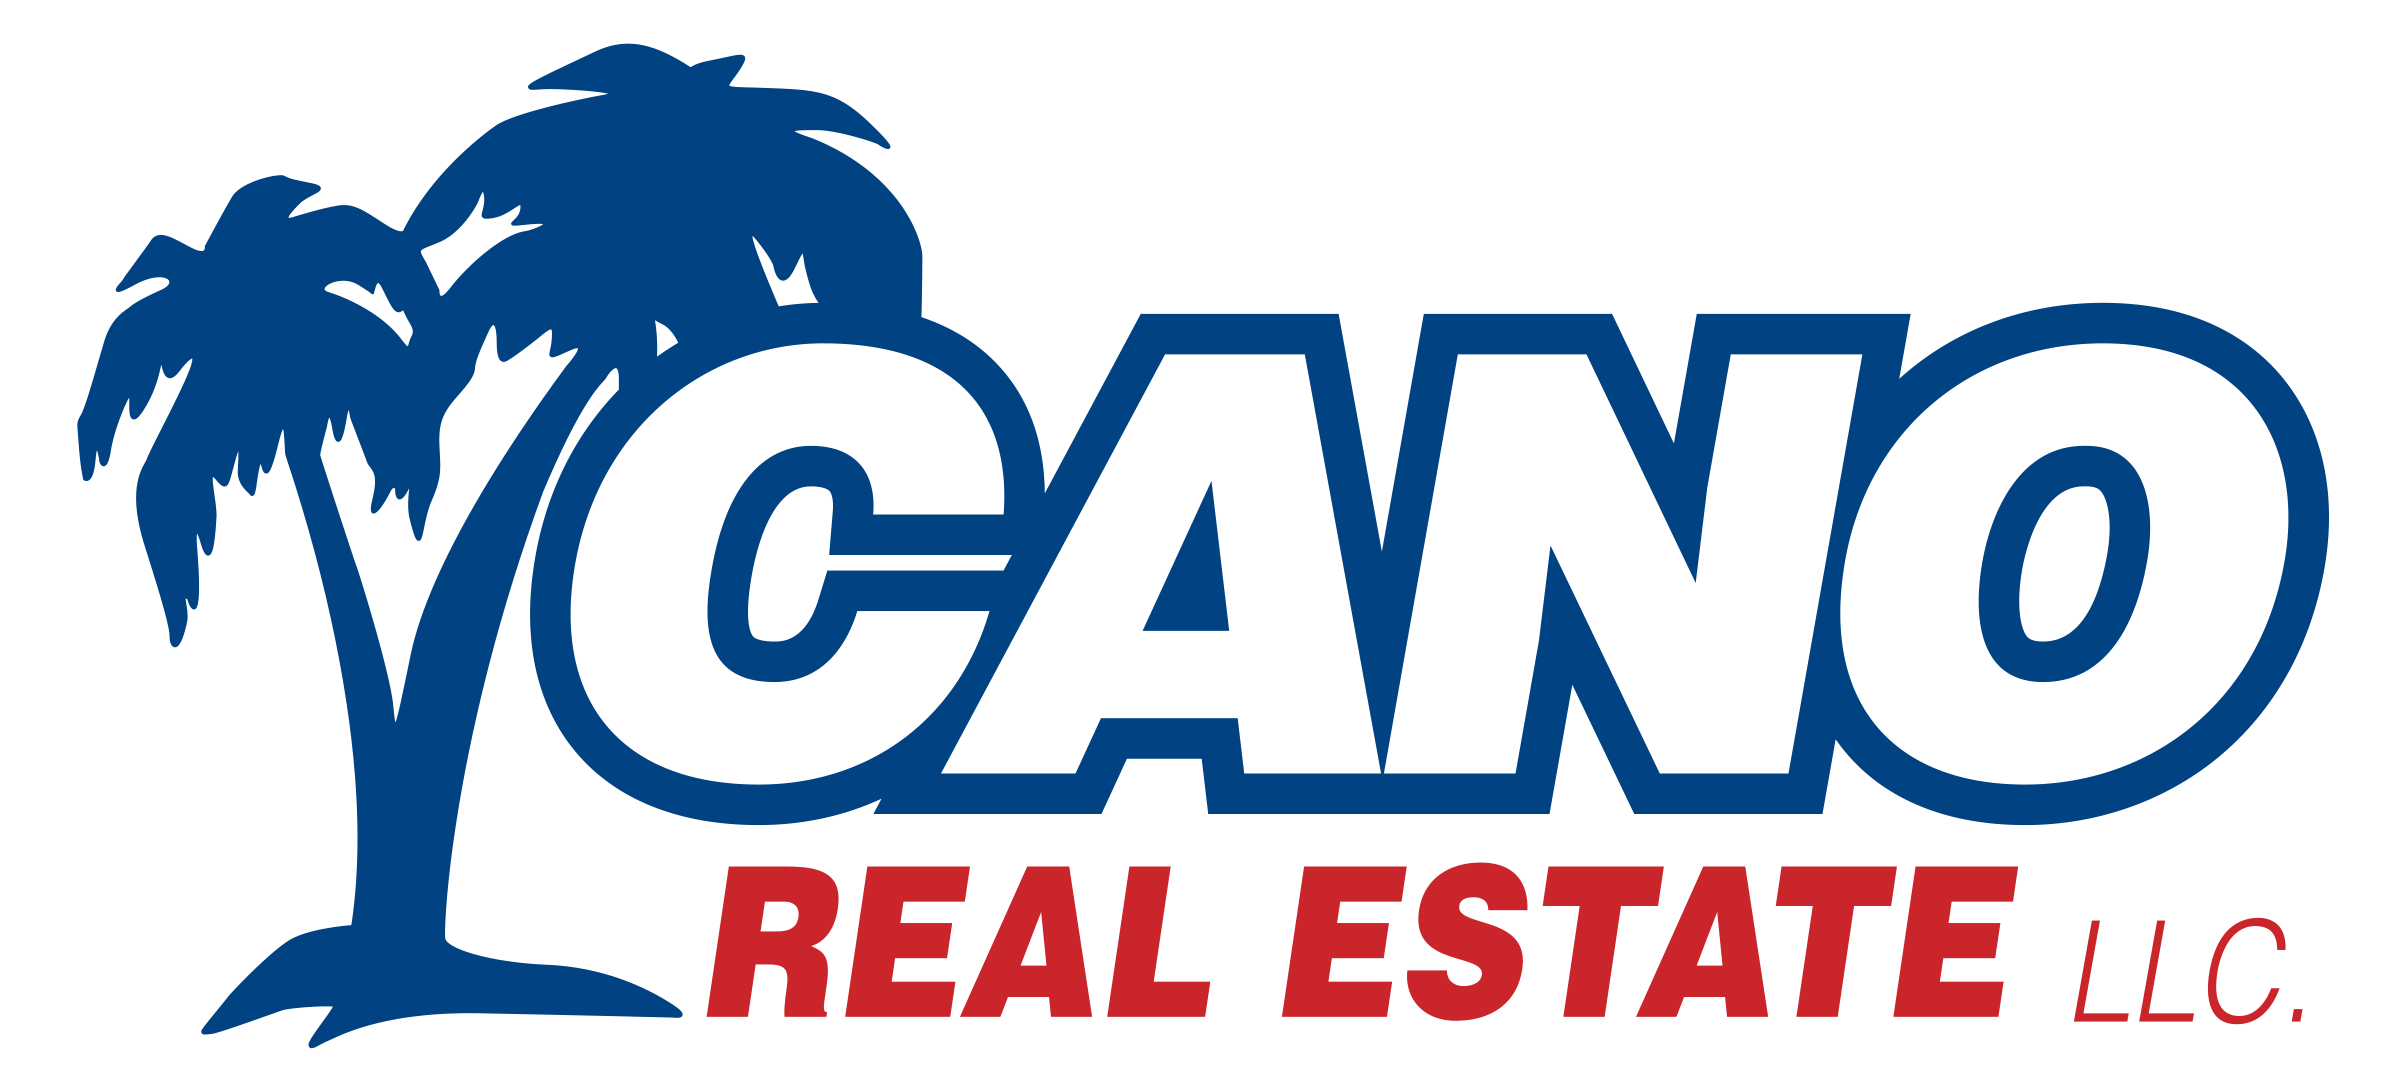 Cano Real Estate logo